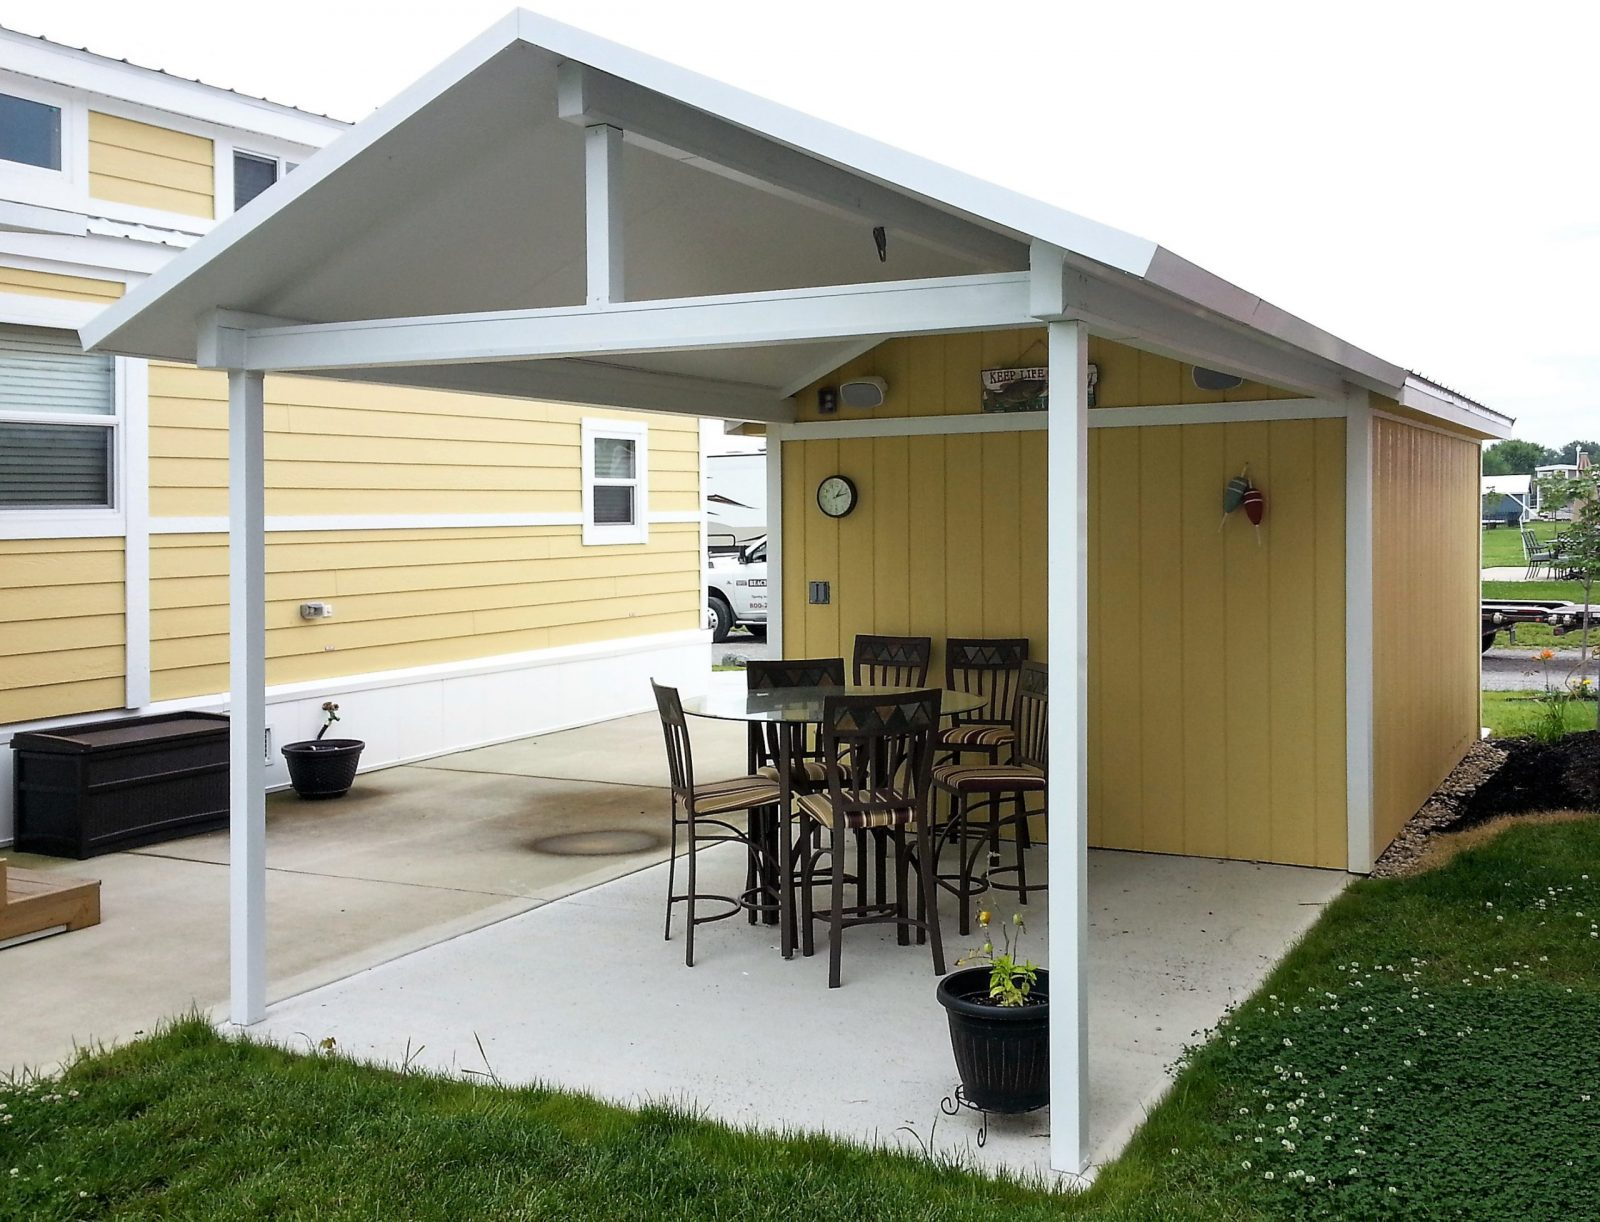 sheds with porches for sale in springfield ohio